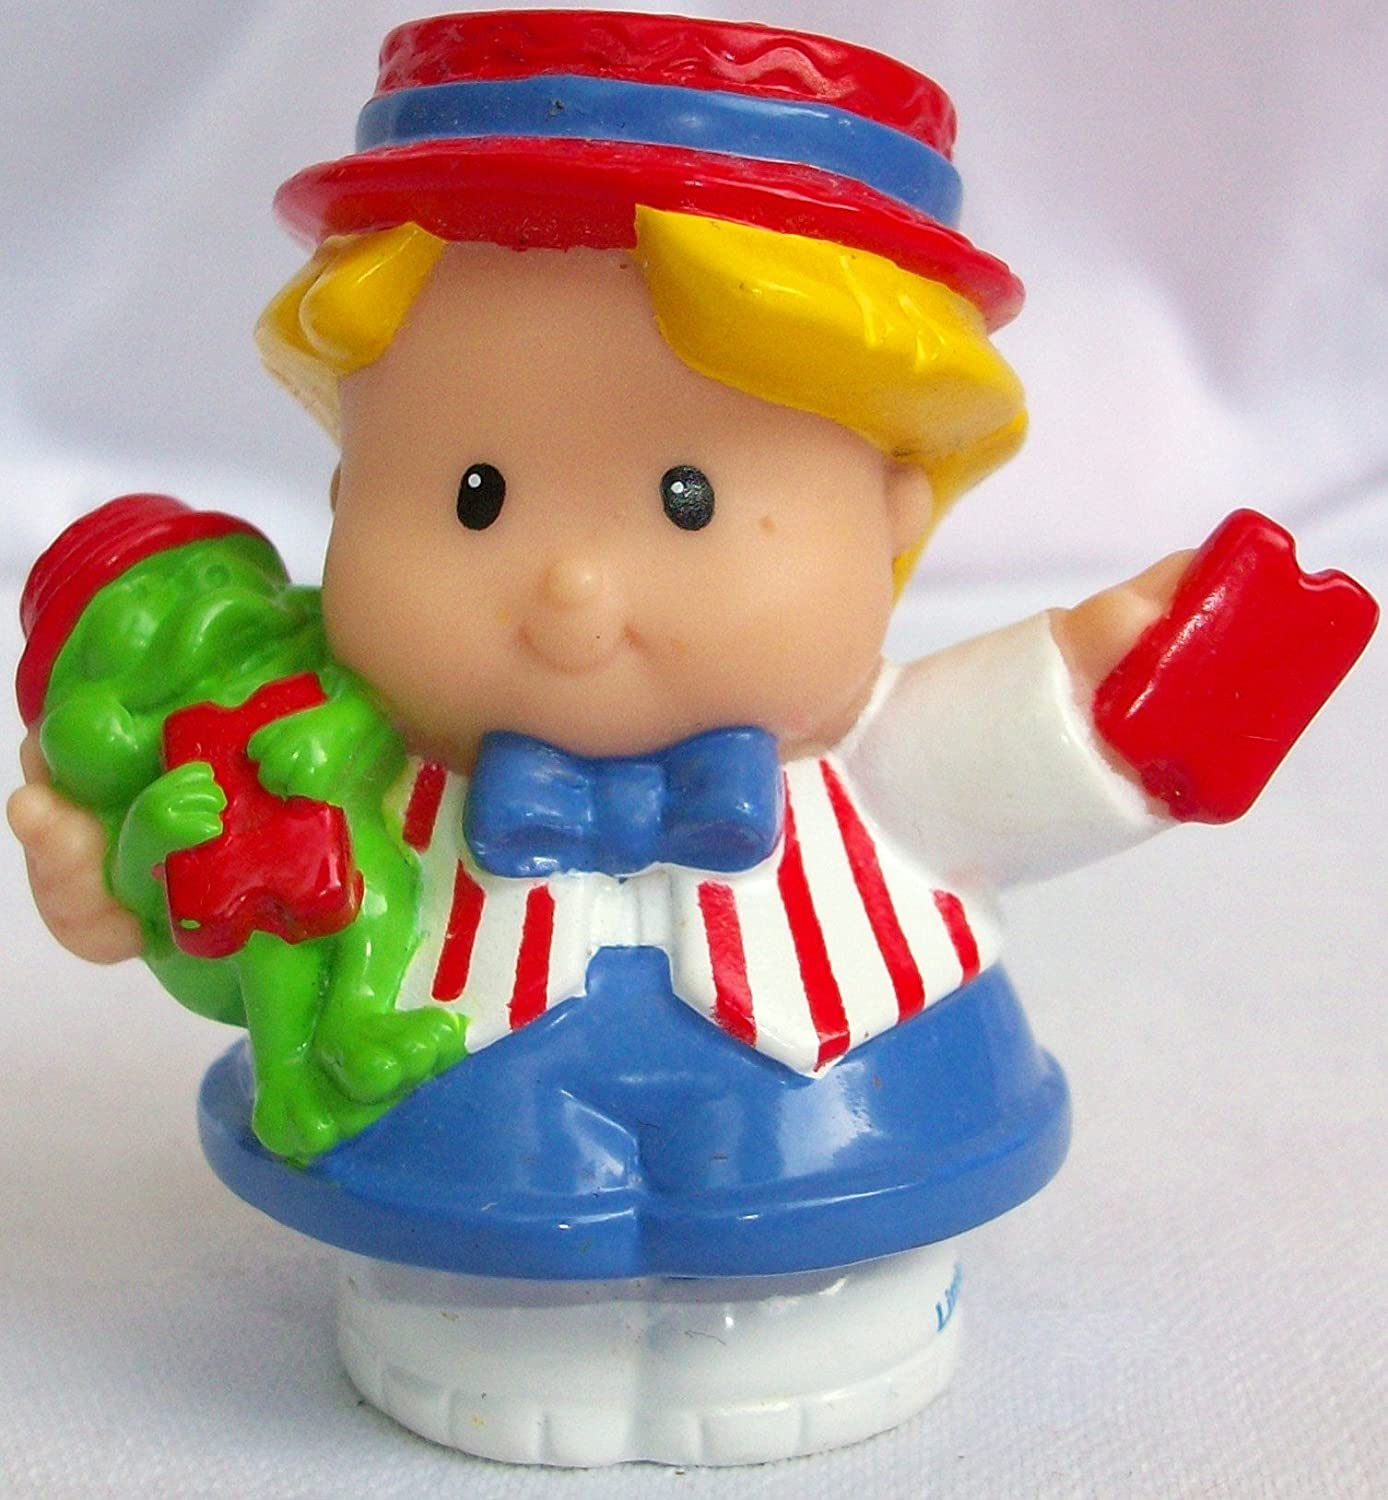 Fisher Price Little People Eddie Circus Ring Master Replacement Figure Doll Toy mattel